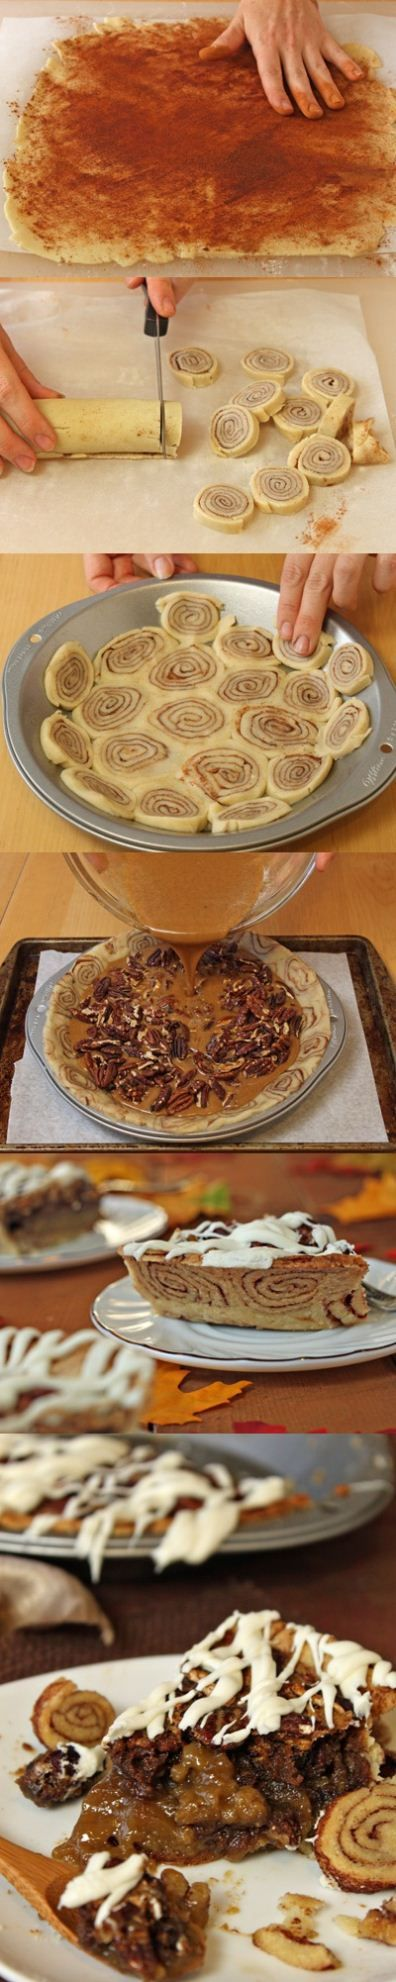 Cinnamon roll crust for holiday pies, or even a breakfast casserole/pie. Someone…